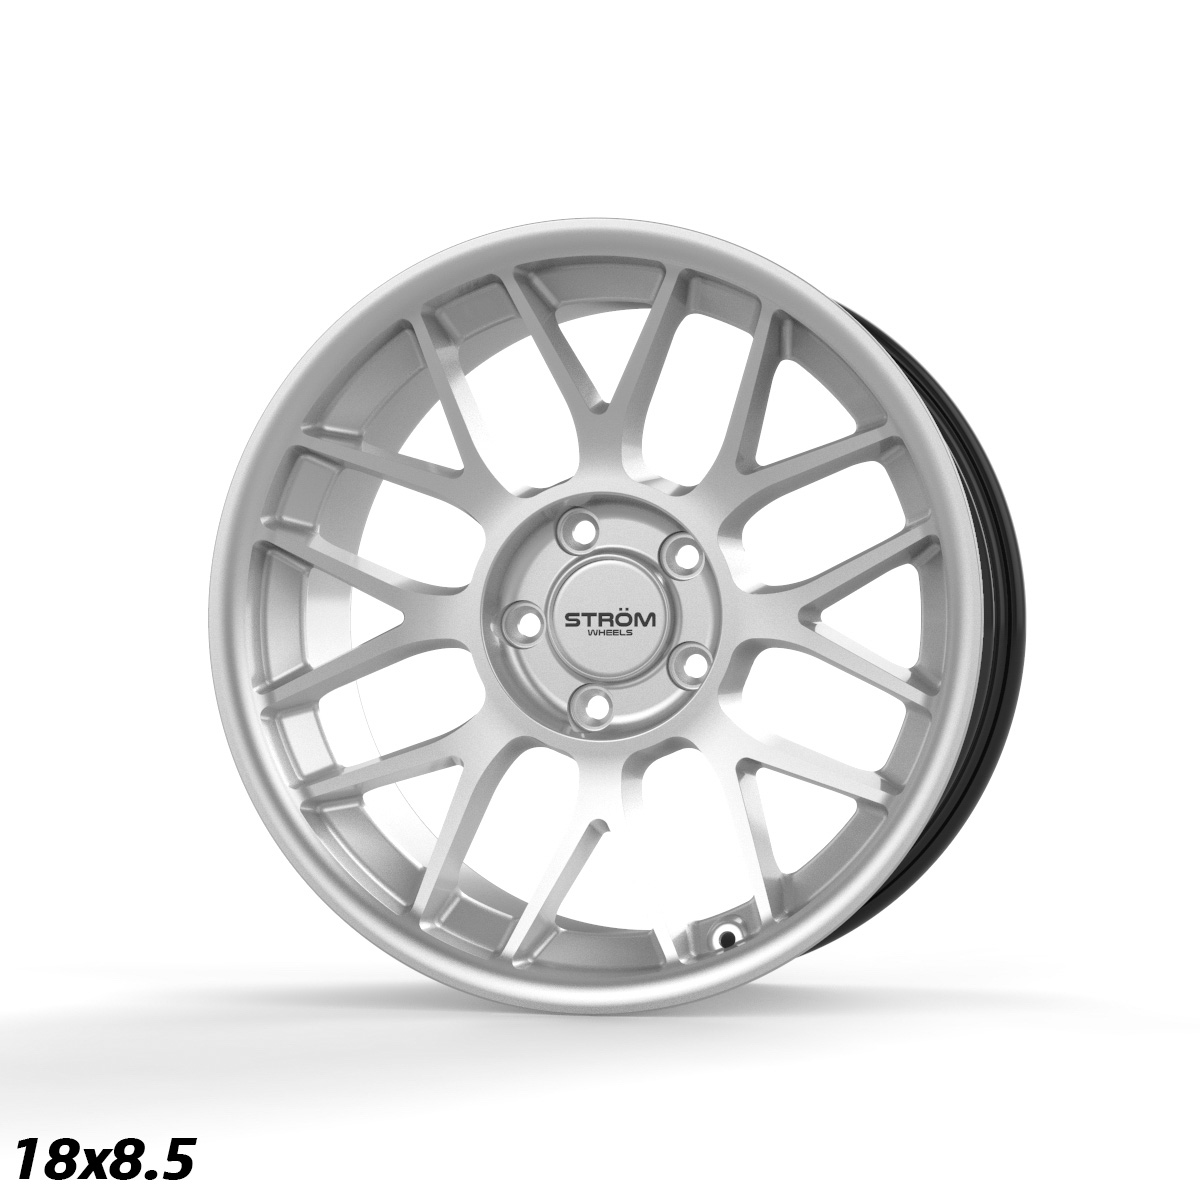 "NEW 19"" STROM STR2 ALLOY WHEELS IN HYPER SILVER WITH DEEPER CONCAVE 9.5"" OR 10"" REARS"